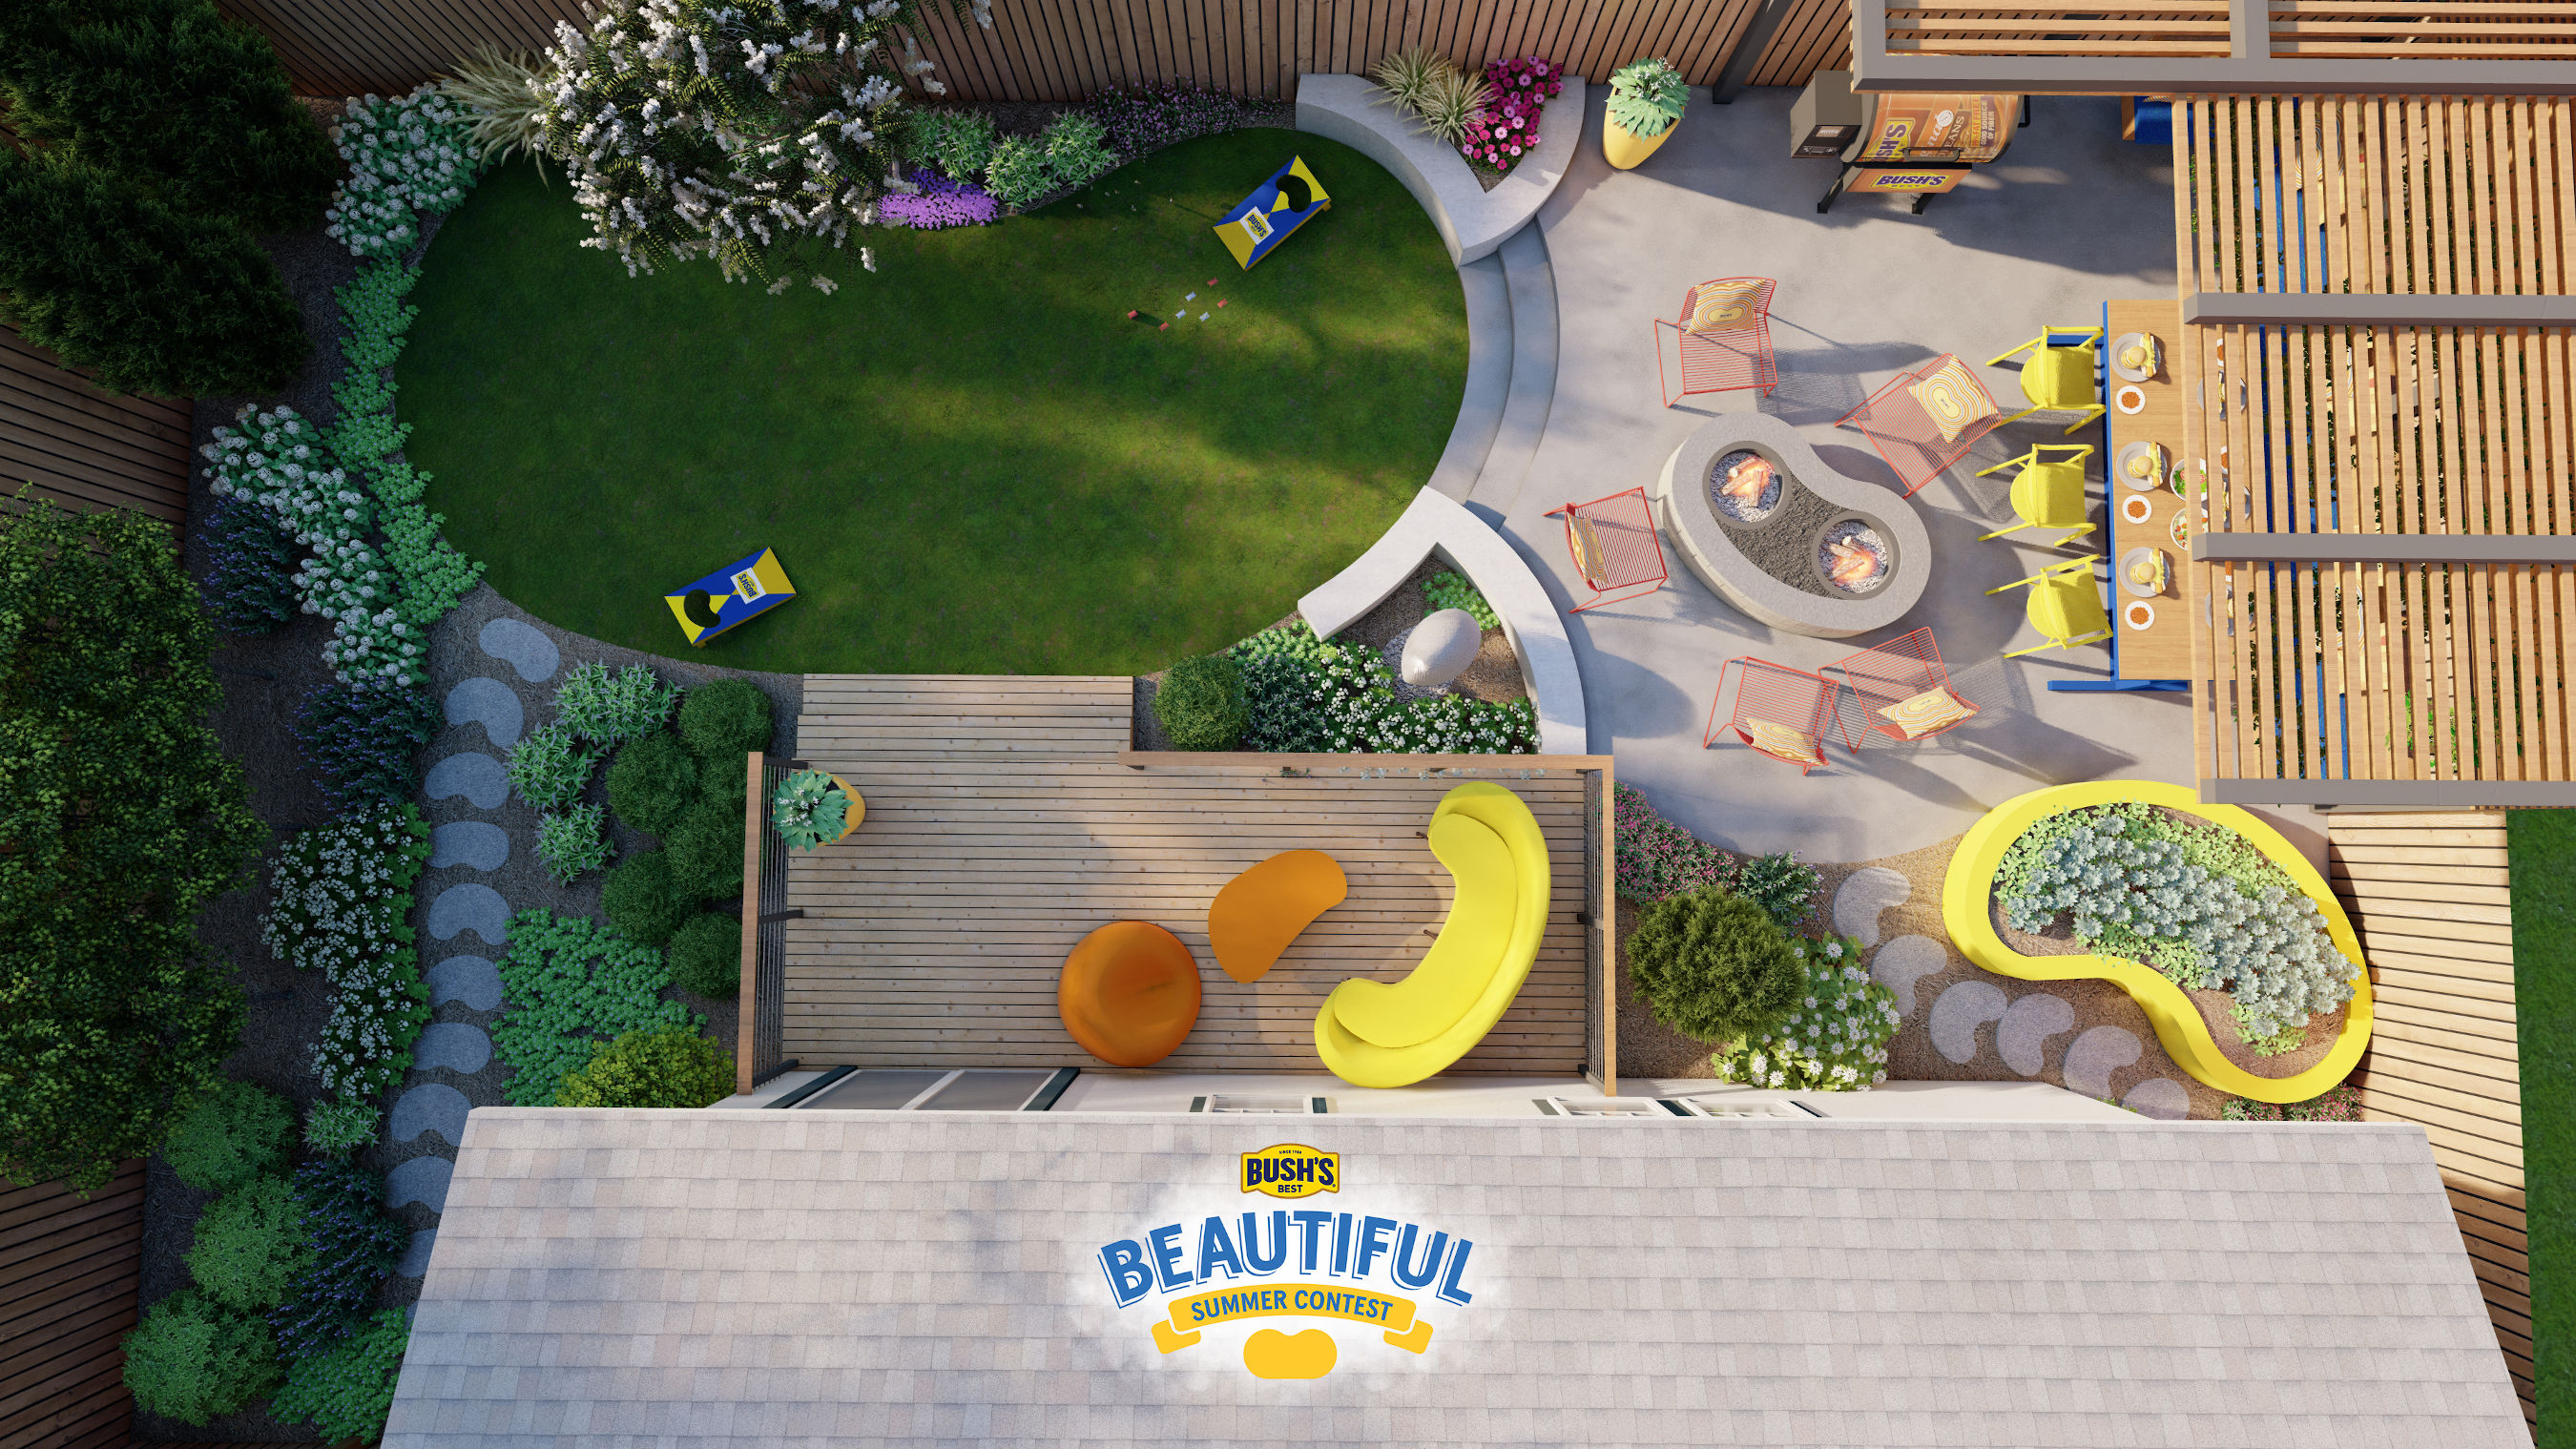 """Bush's® Beans is teaming up with HGTV's """"Good Bones"""" host Mina Starsiak Hawk to give one lucky fan a chance to win a Bush's Bean-themed backyard makeover of their dreams, designed by Mina."""